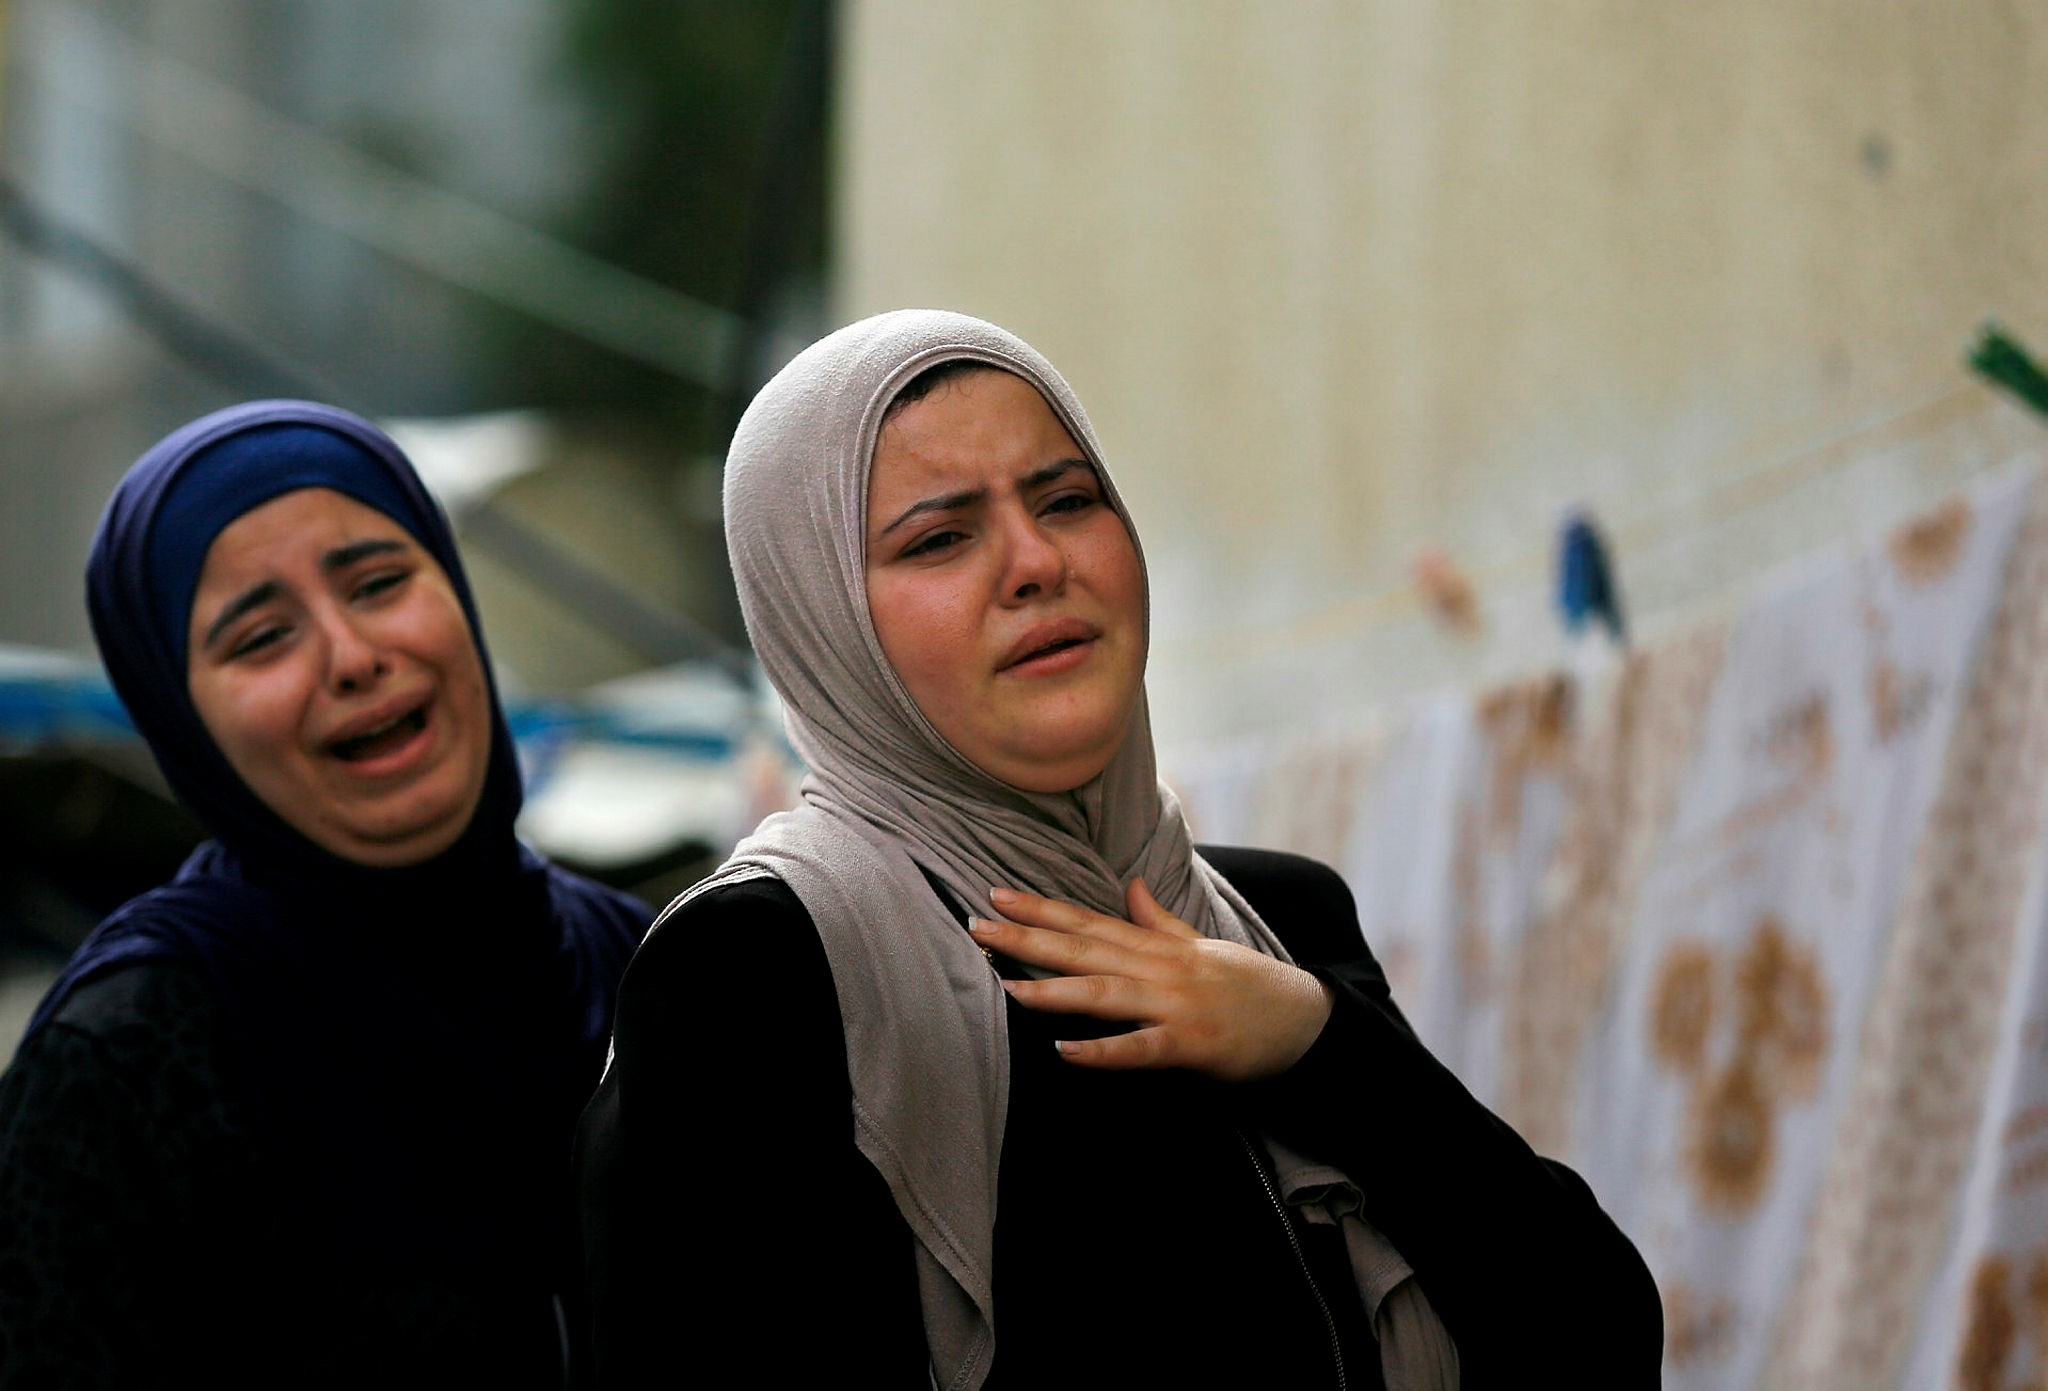 Mourning relatives of a Palestinian who was killed during clashes on the Gaza-Israel border, Gaza City, April 5.